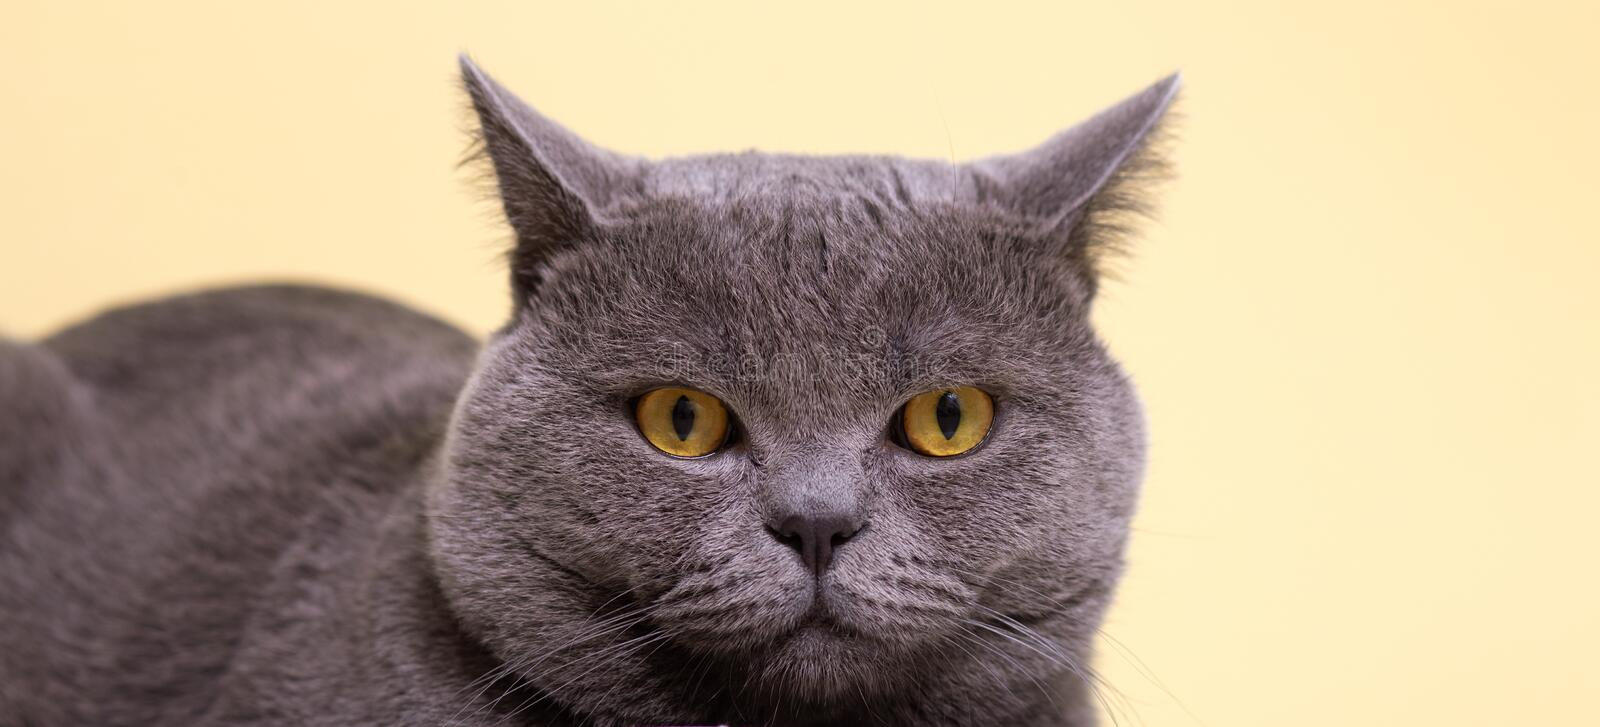 Gray british cat with yellow eyes scared on a light background. Close-up stock photography